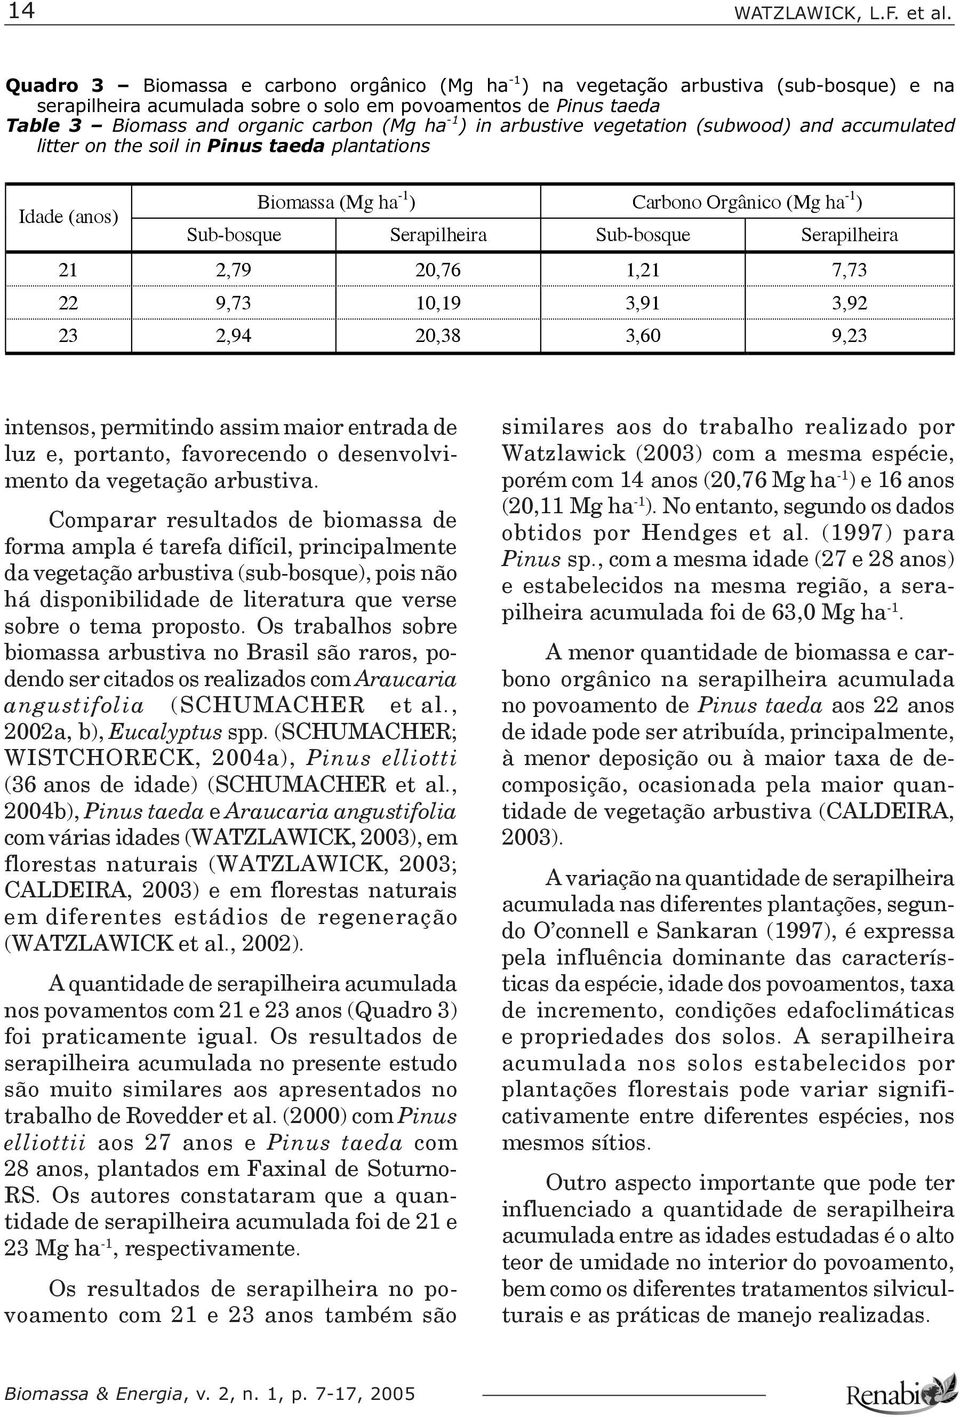 -1 ) in arbustive vegetation (subwood) and accumulated litter on the soil in Pinus taeda plantations Idade (anos) Biomassa (Mg ha -1 ) Carbono Orgânico (Mg ha -1 ) Sub-bosque Serapilheira Sub-bosque